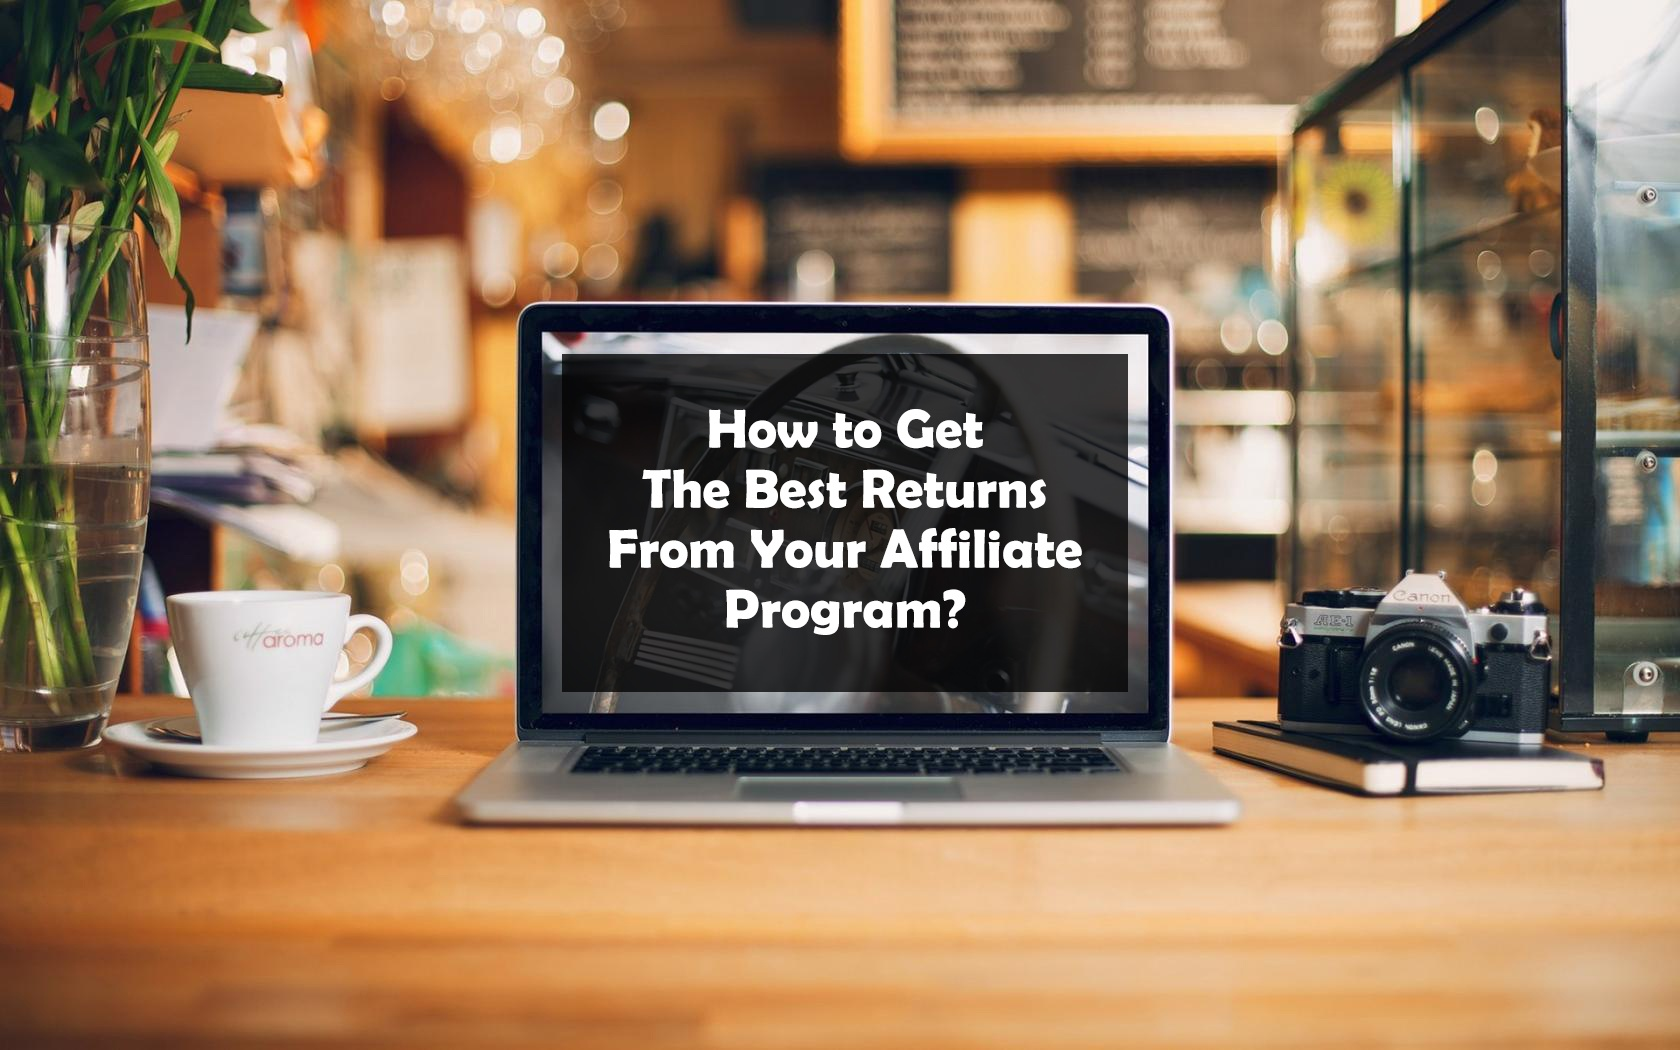 How to Get The Best Returns From Your Affiliate Programs?